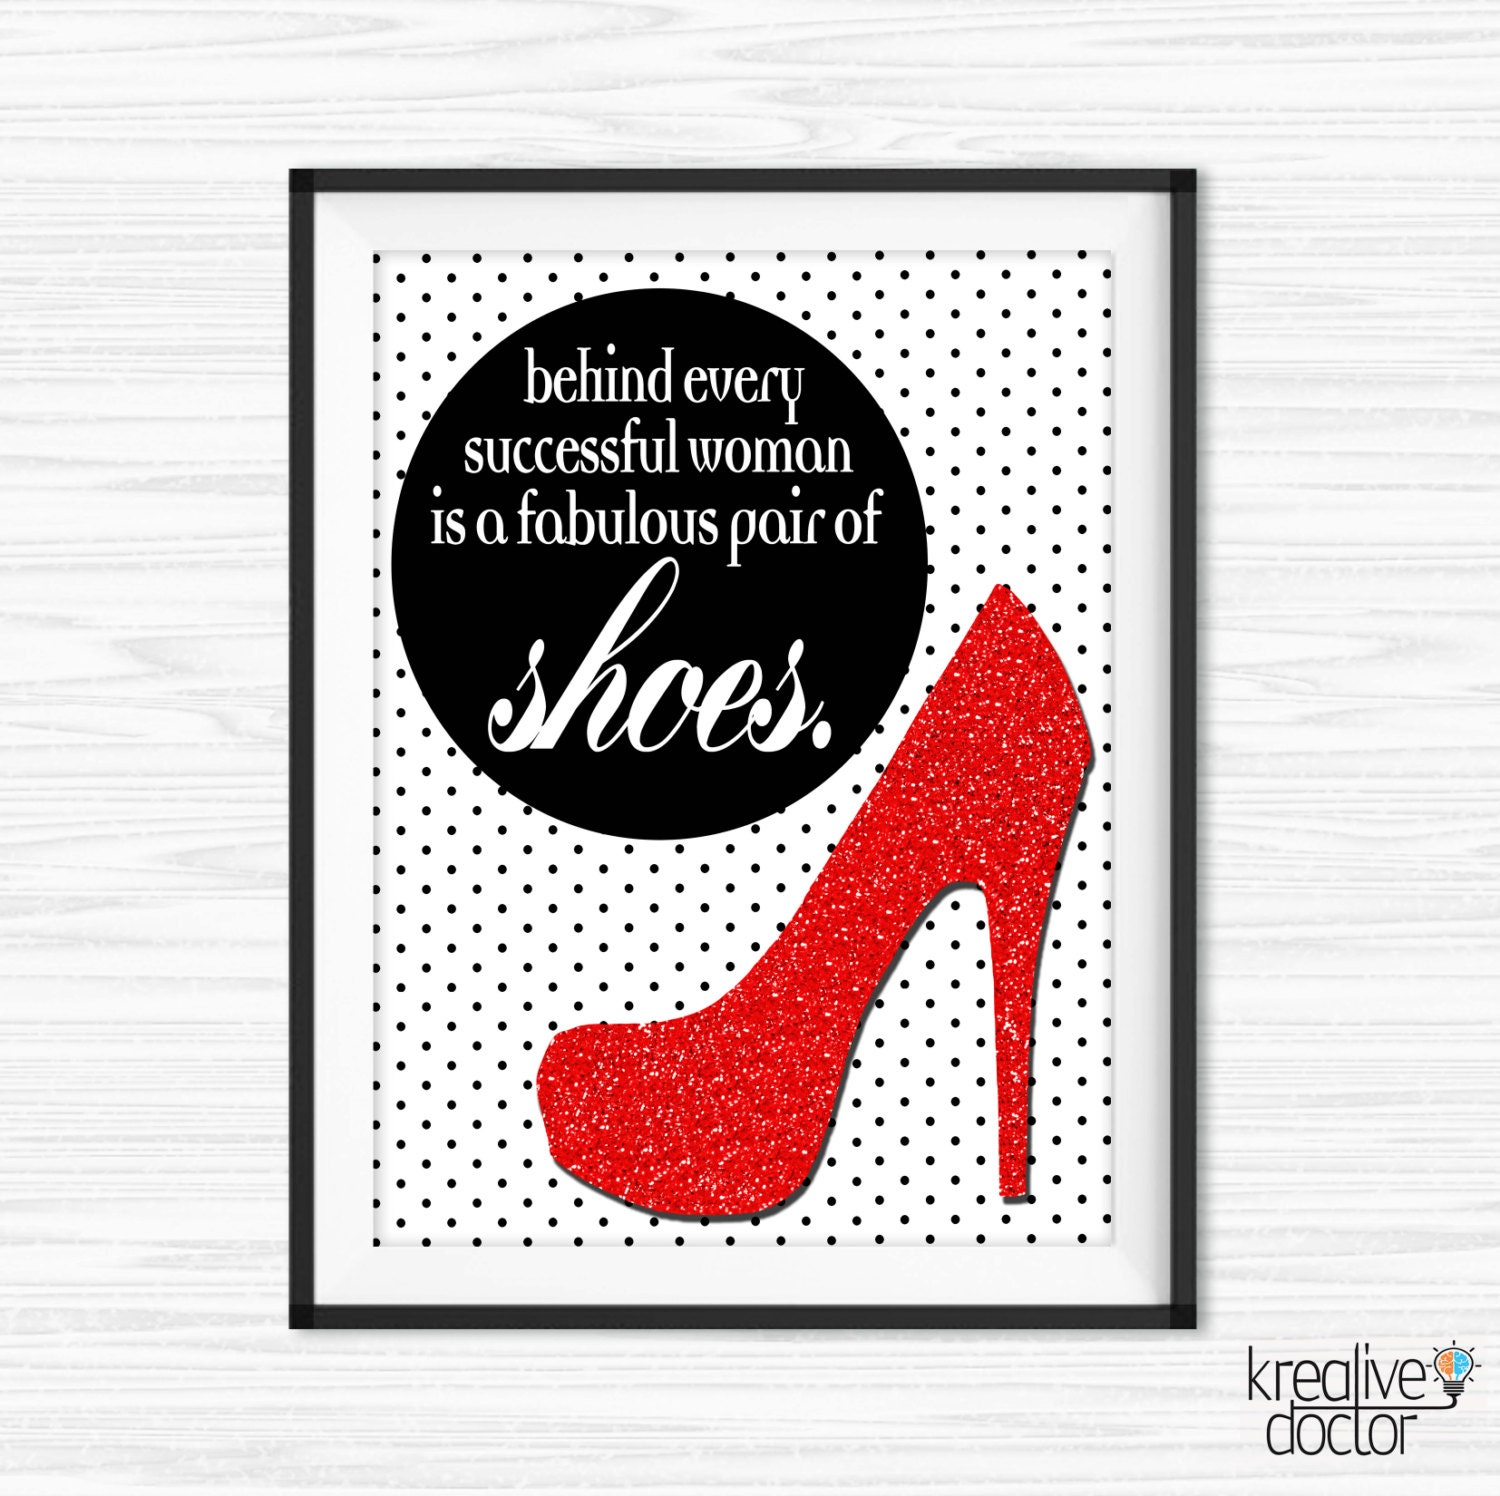 Printable shoe wall art canvas quotes shoe quotes for office printable shoe wall art canvas quotes shoe quotes for office motivational wall decor success quotes office wall art quote prints jeuxipadfo Image collections